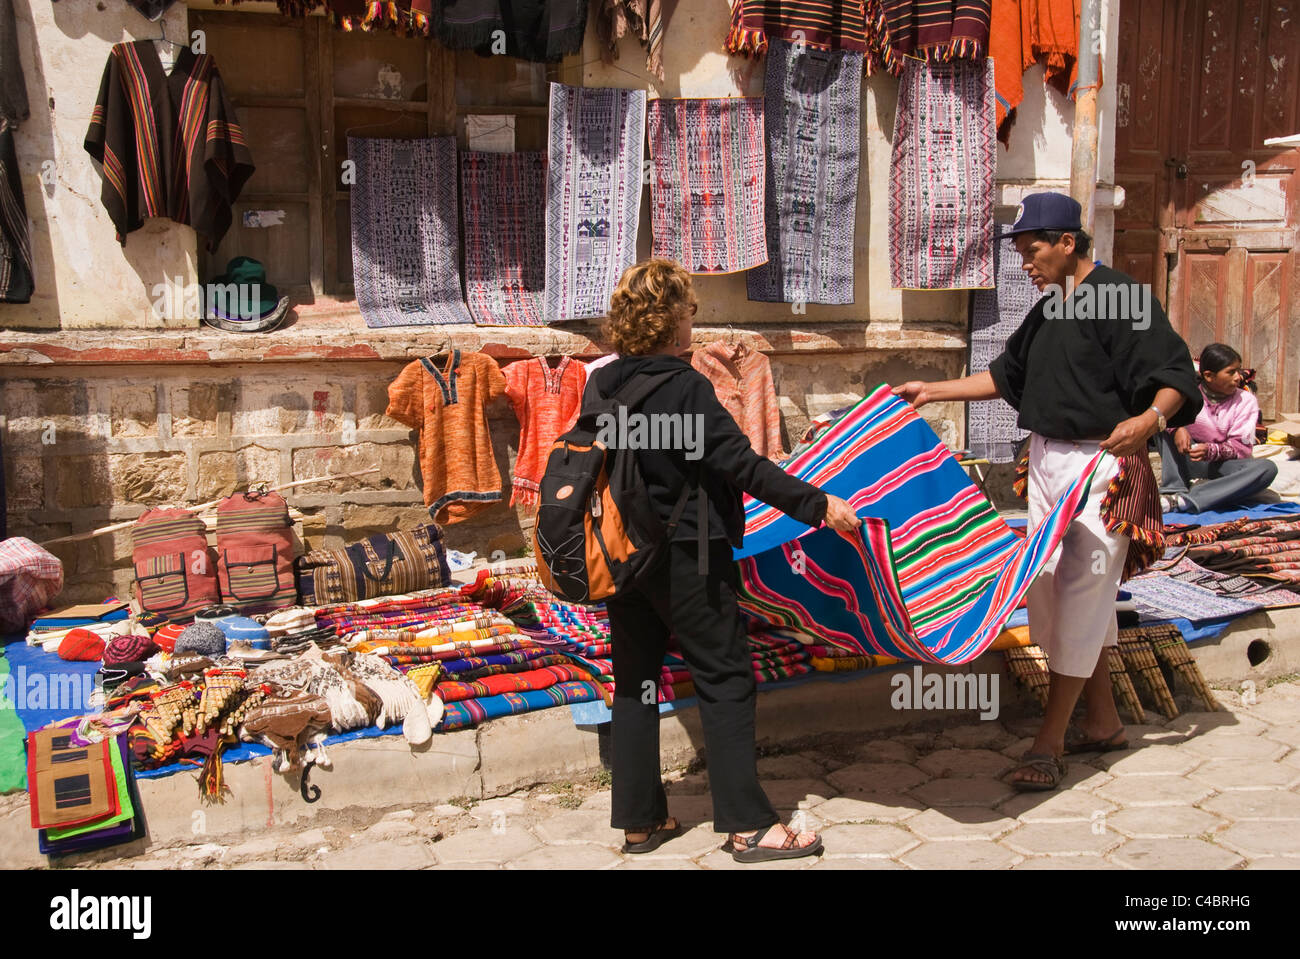 Tarabuco, Sunday market, Western woman looking at textiles for sale - Stock Image